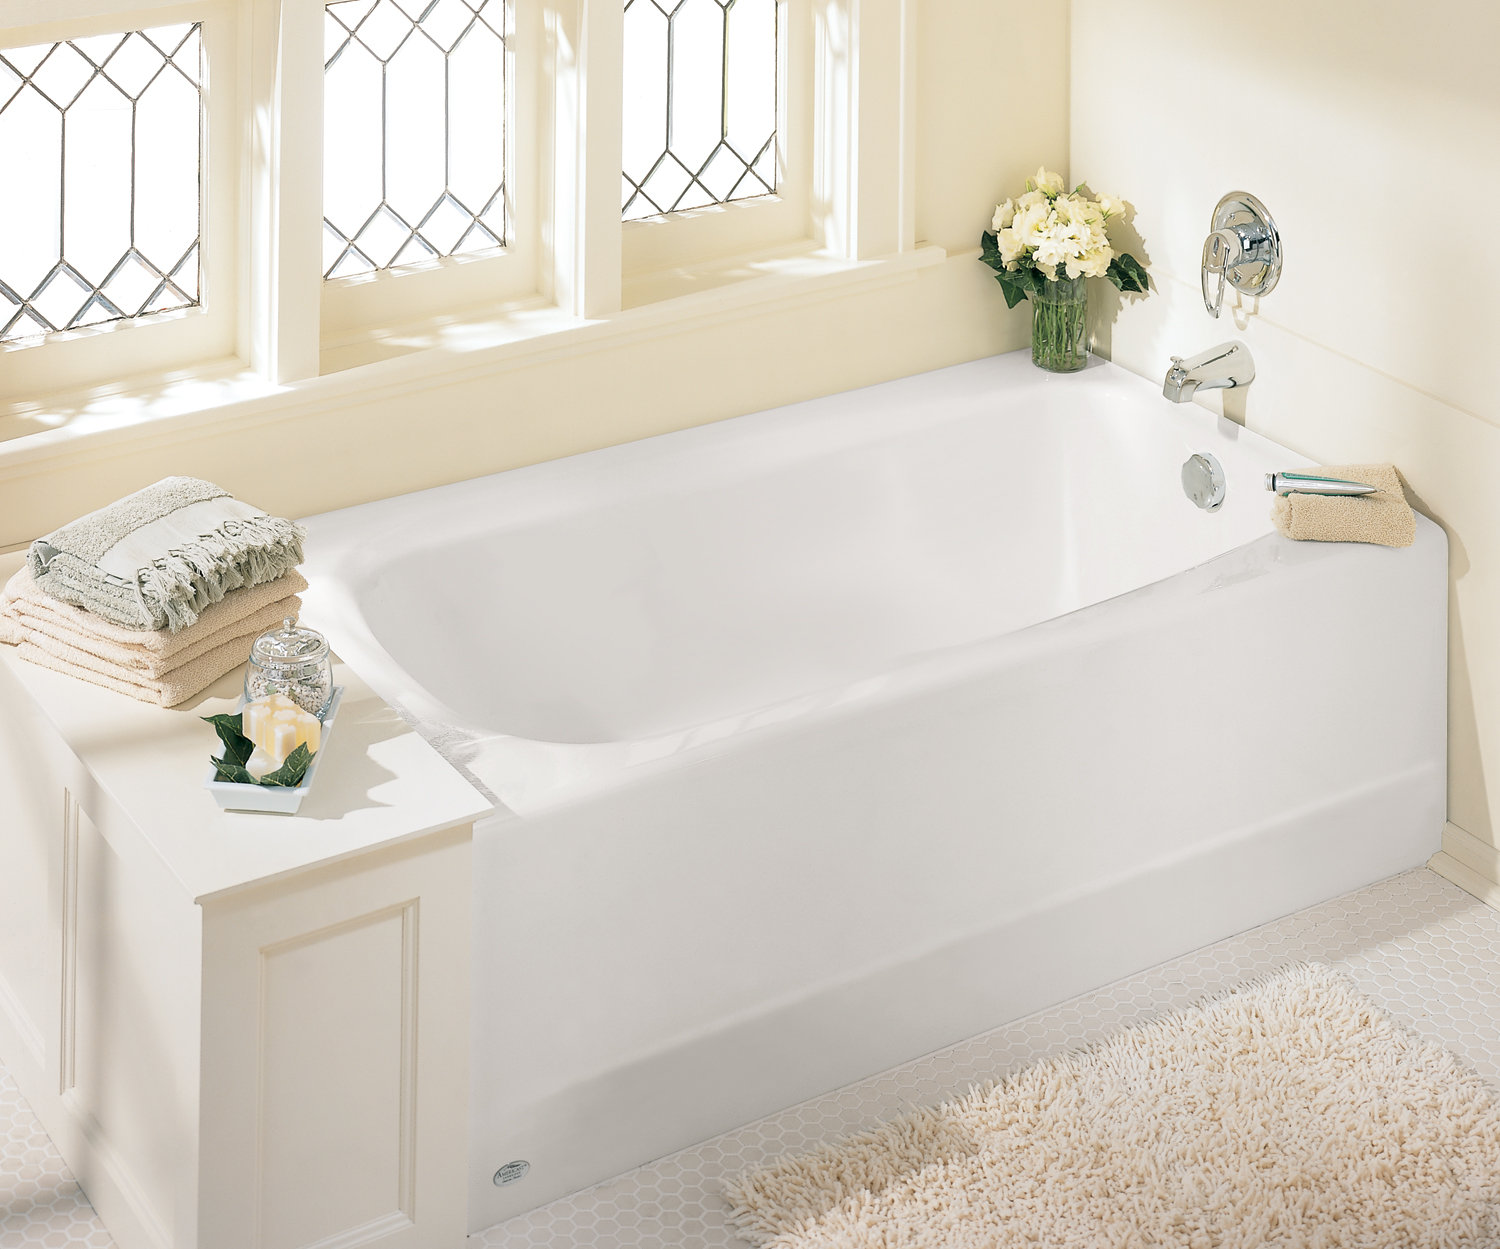 American Standard 2460 002 020 Cambridge 5 Feet Bath Tub